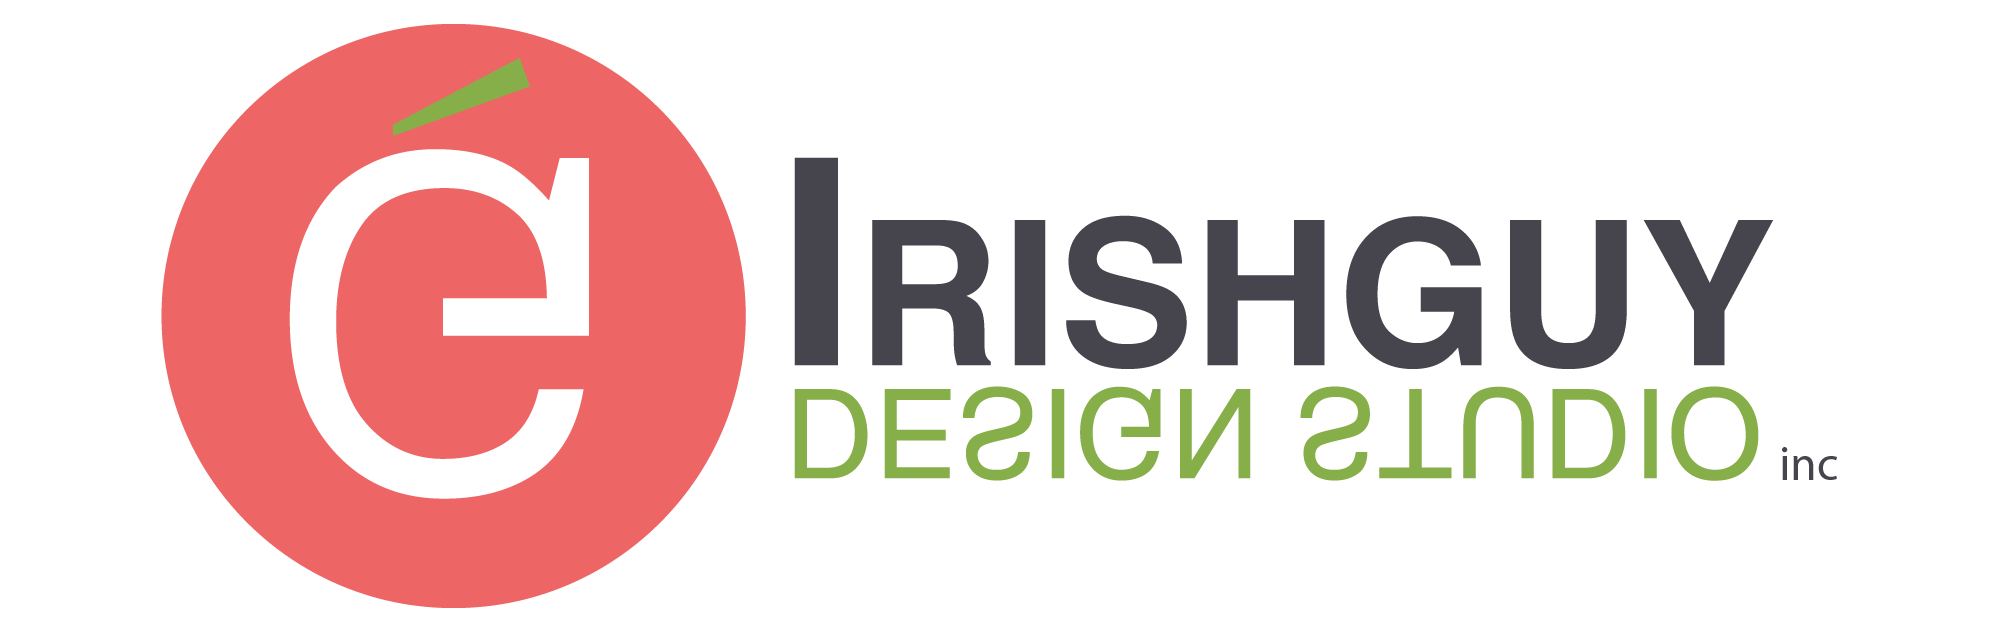 IRISHGUY Design Studio